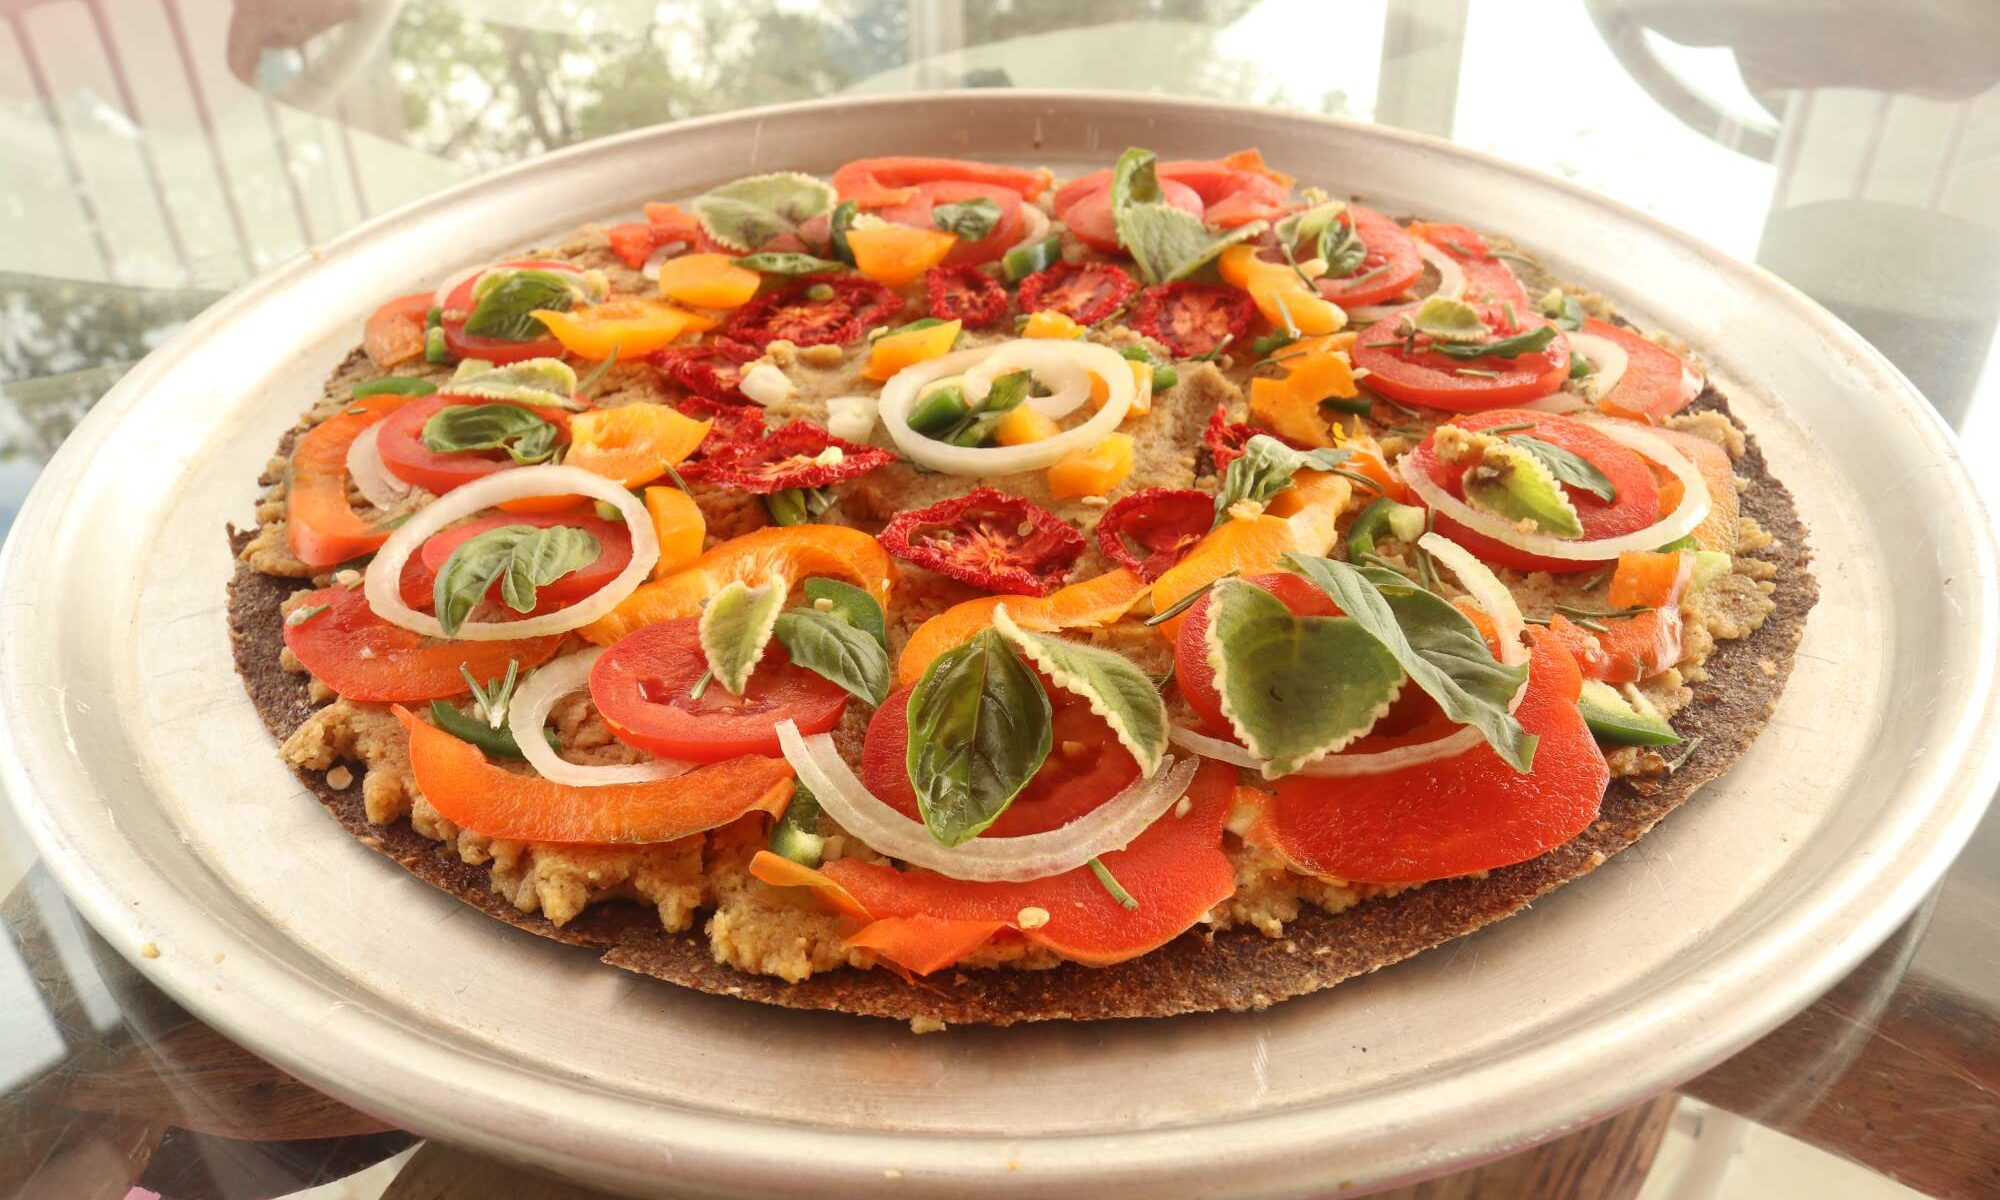 Raw vegan pizza by Michael Ducharme